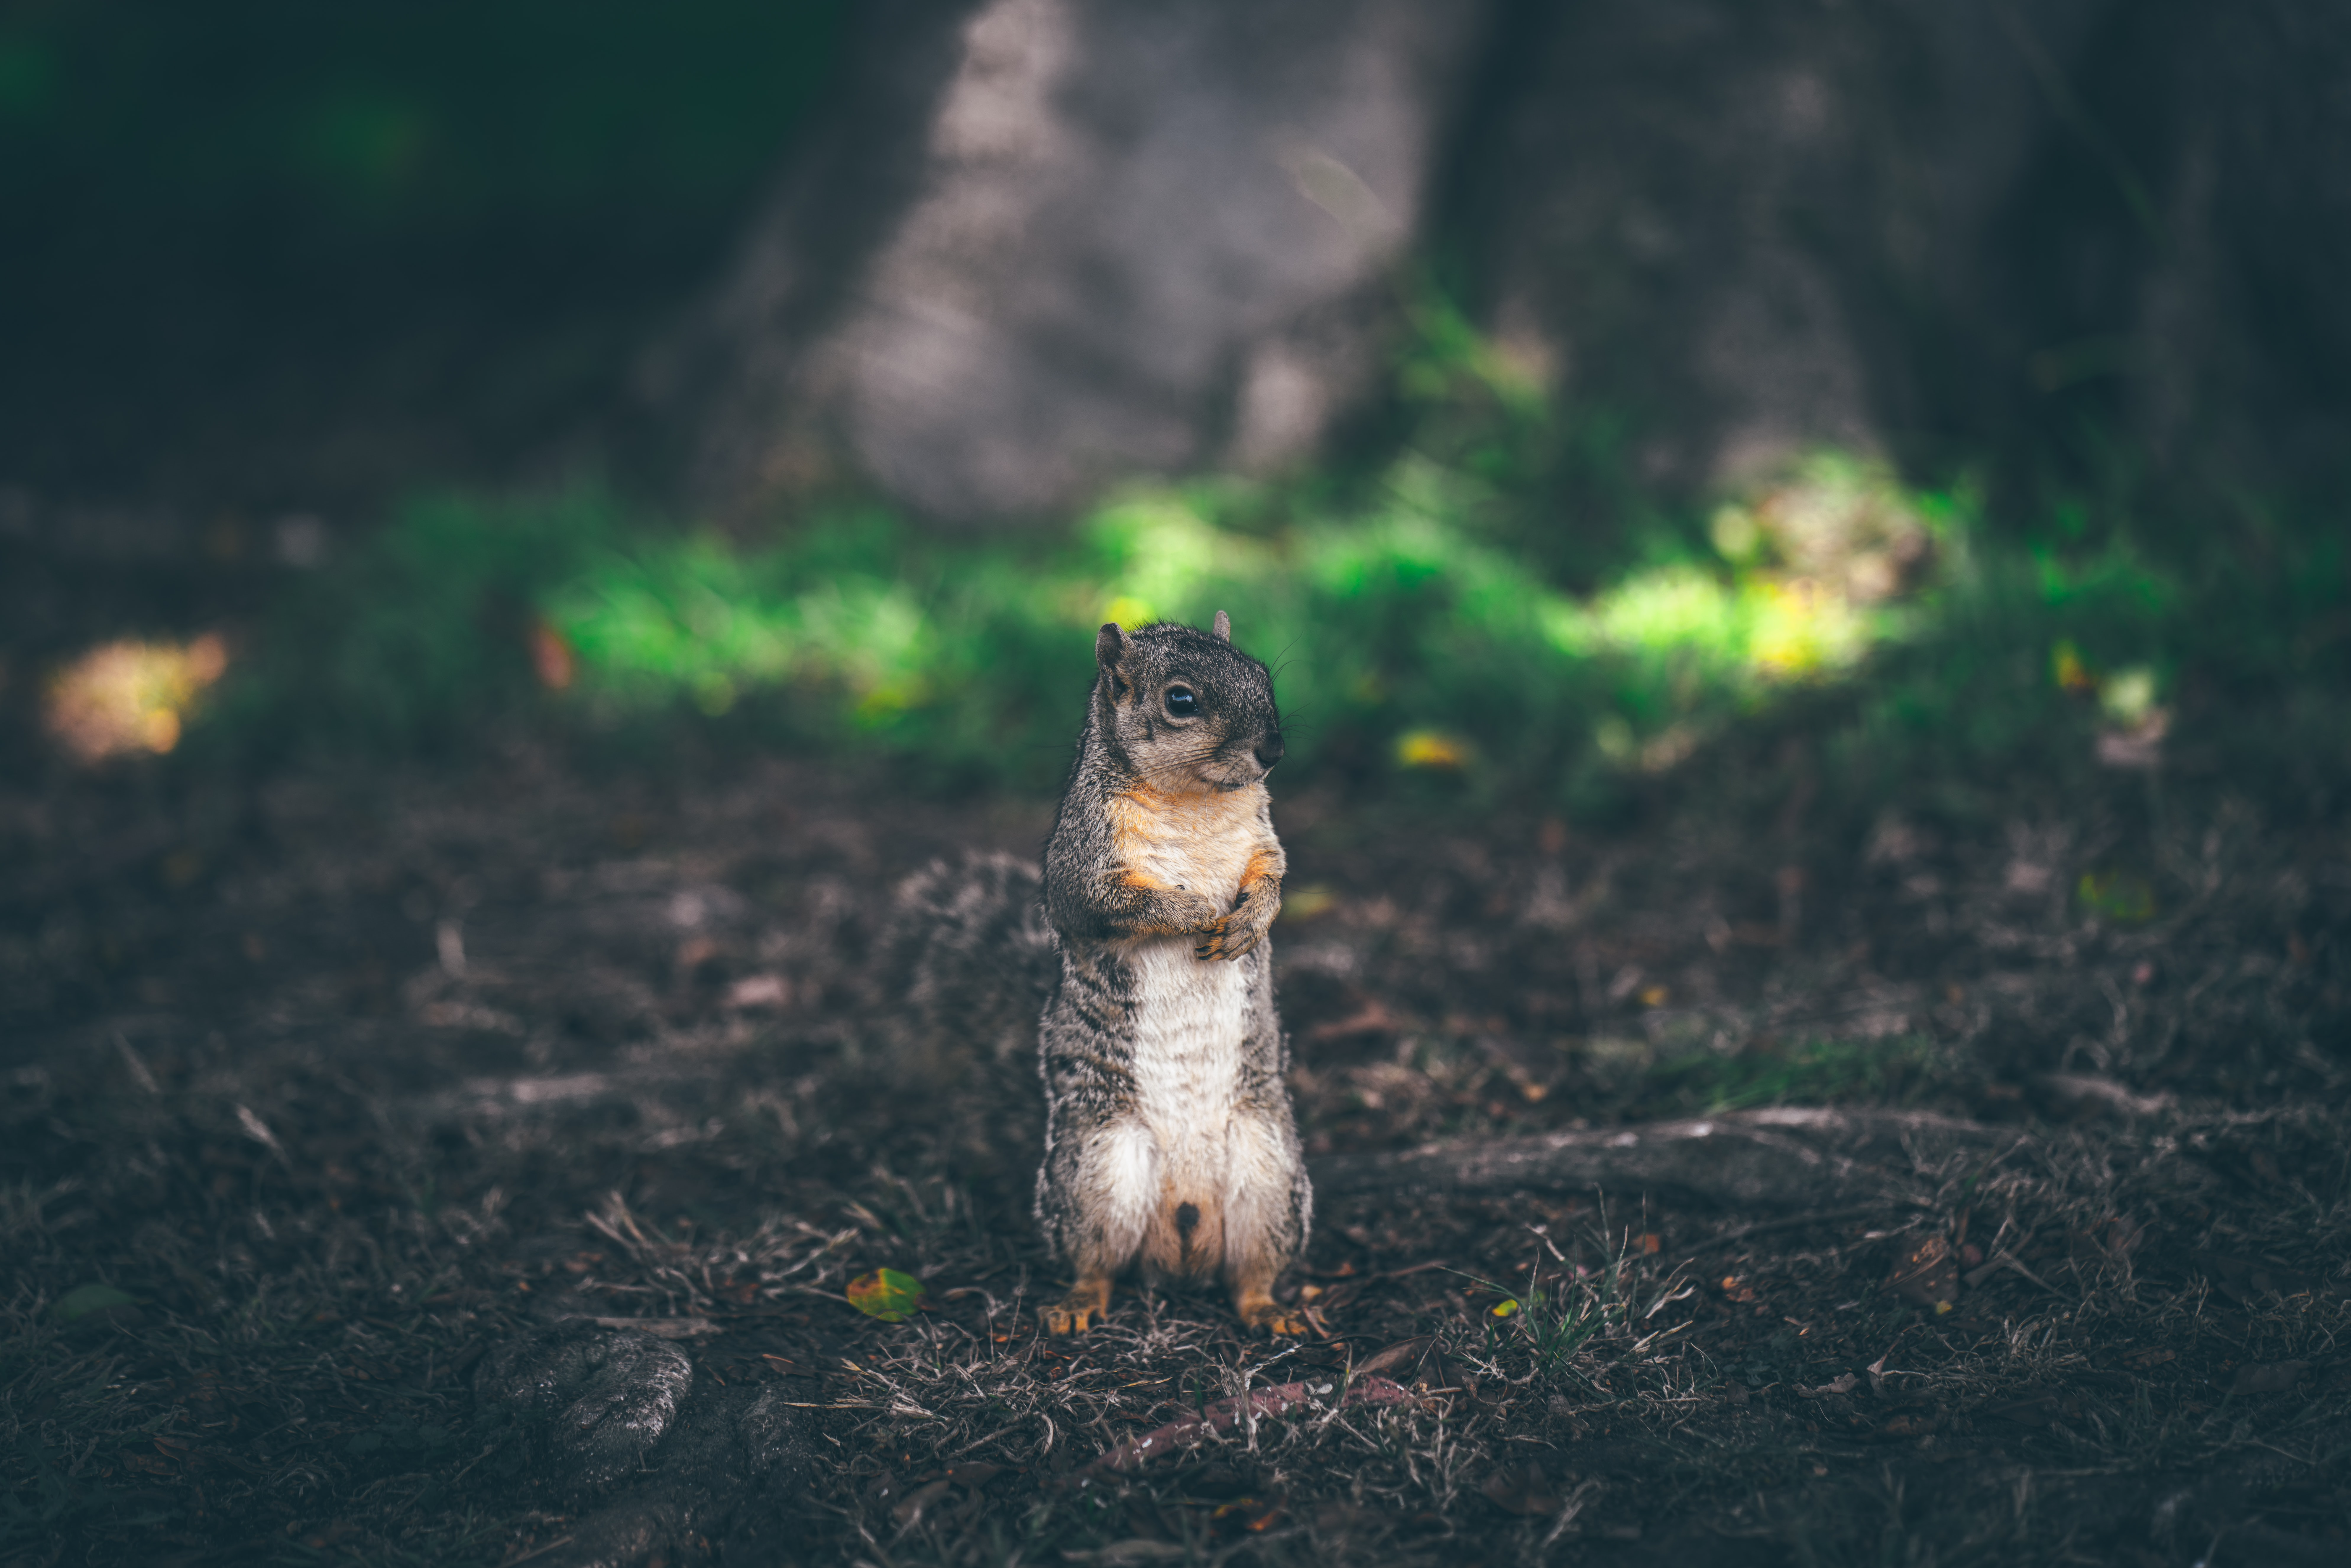 brown squirrel standing on brown soil